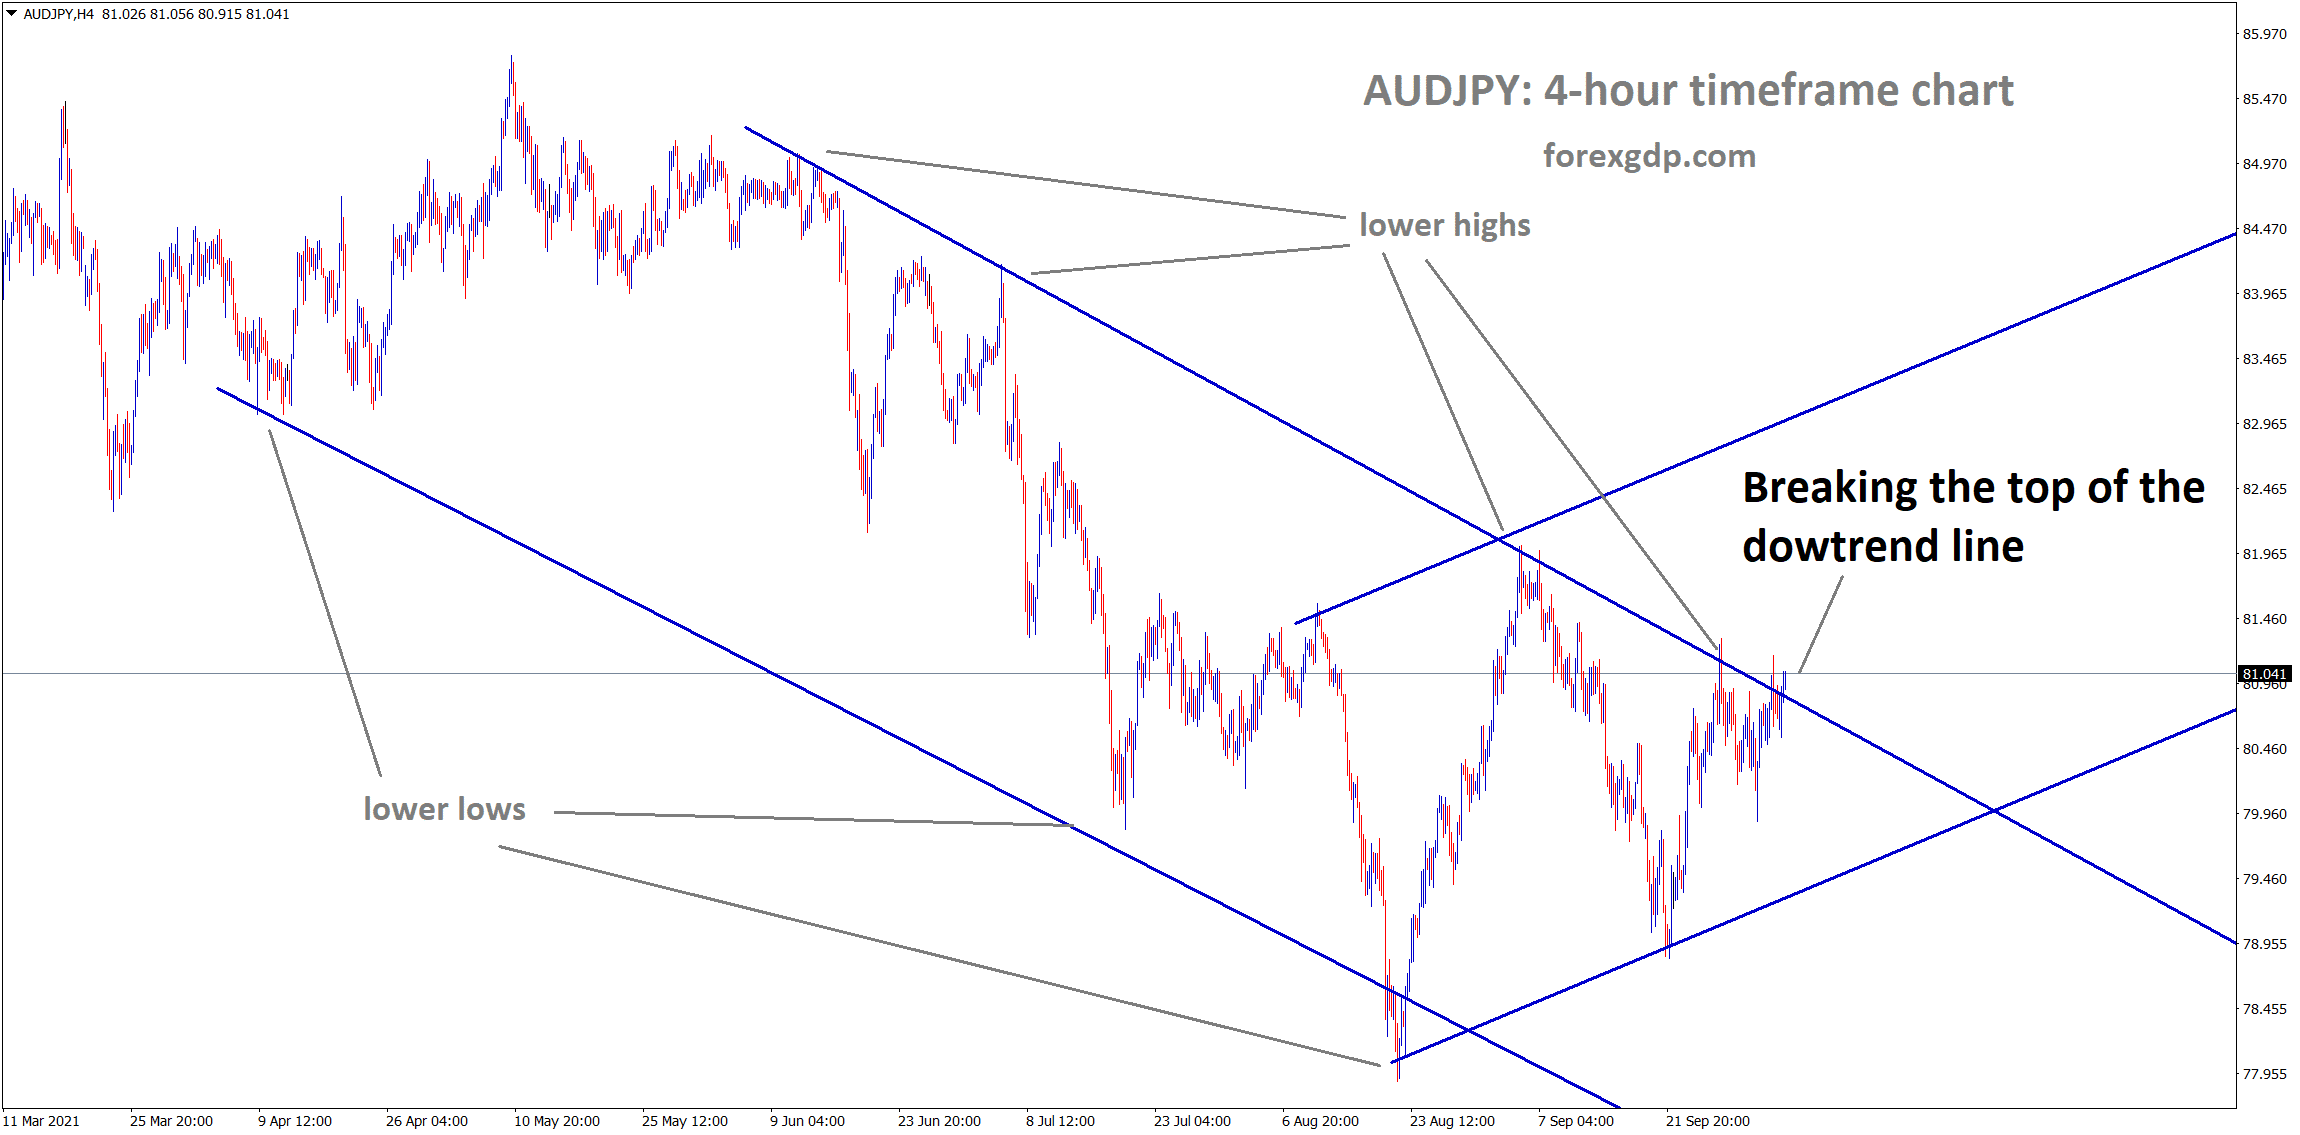 audjpy is breaking the top of the downtrend line